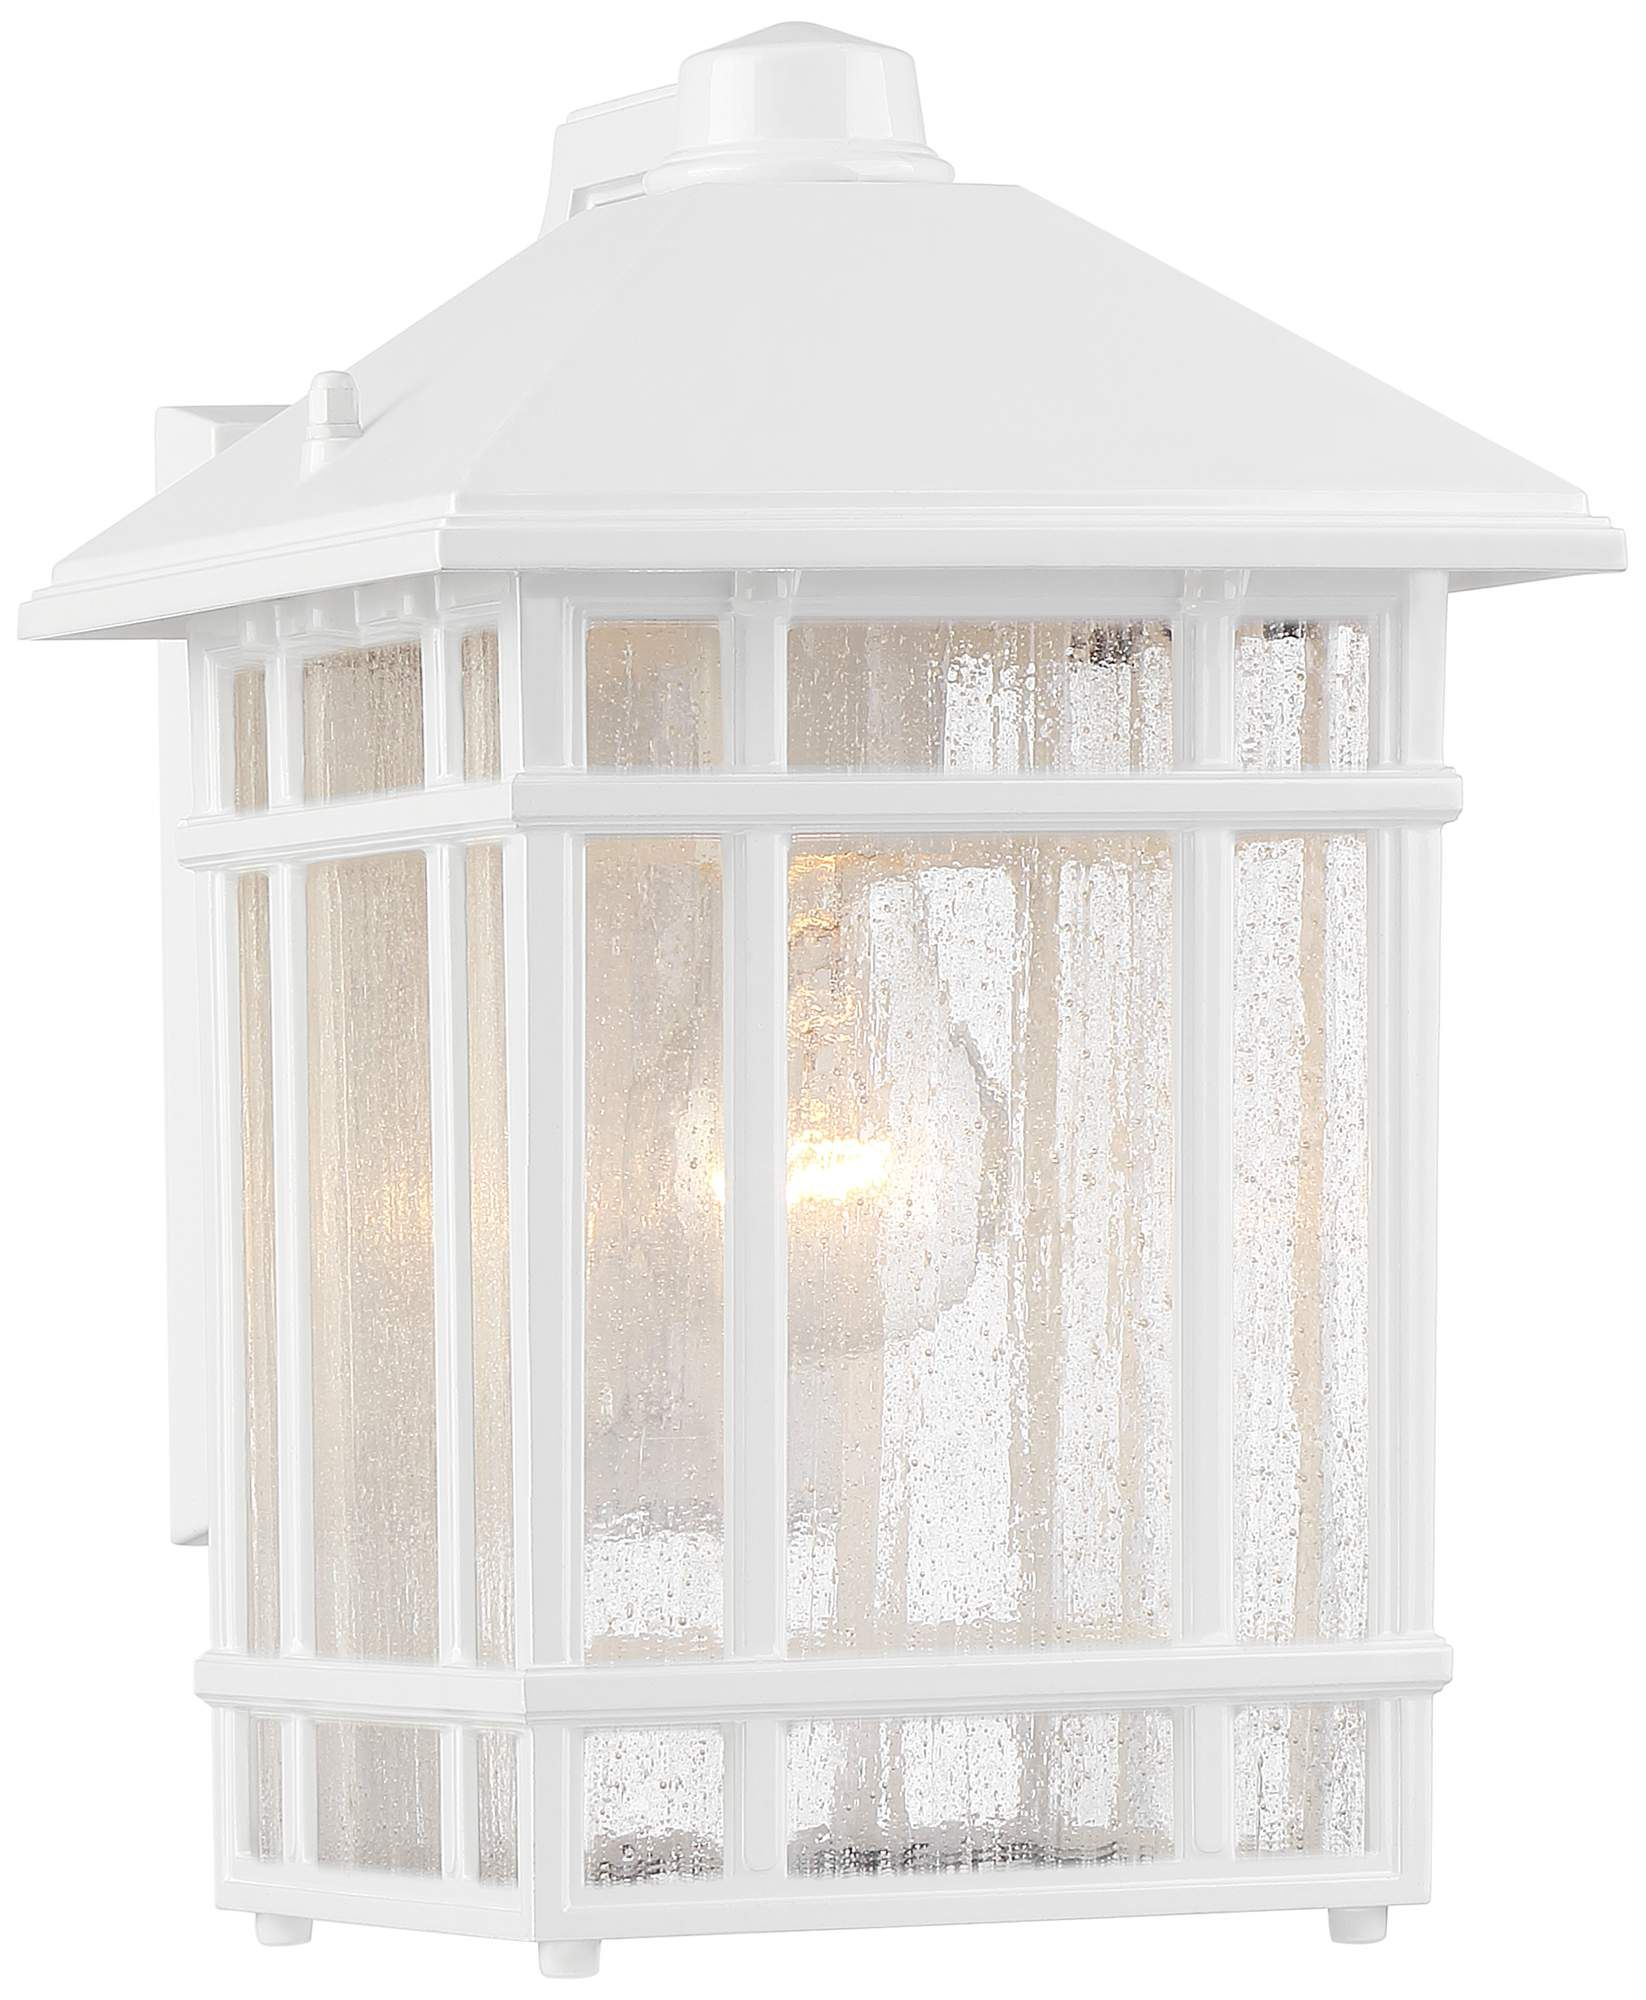 Jardin Du Jour 11 Inch High White Outdoor Wall Light